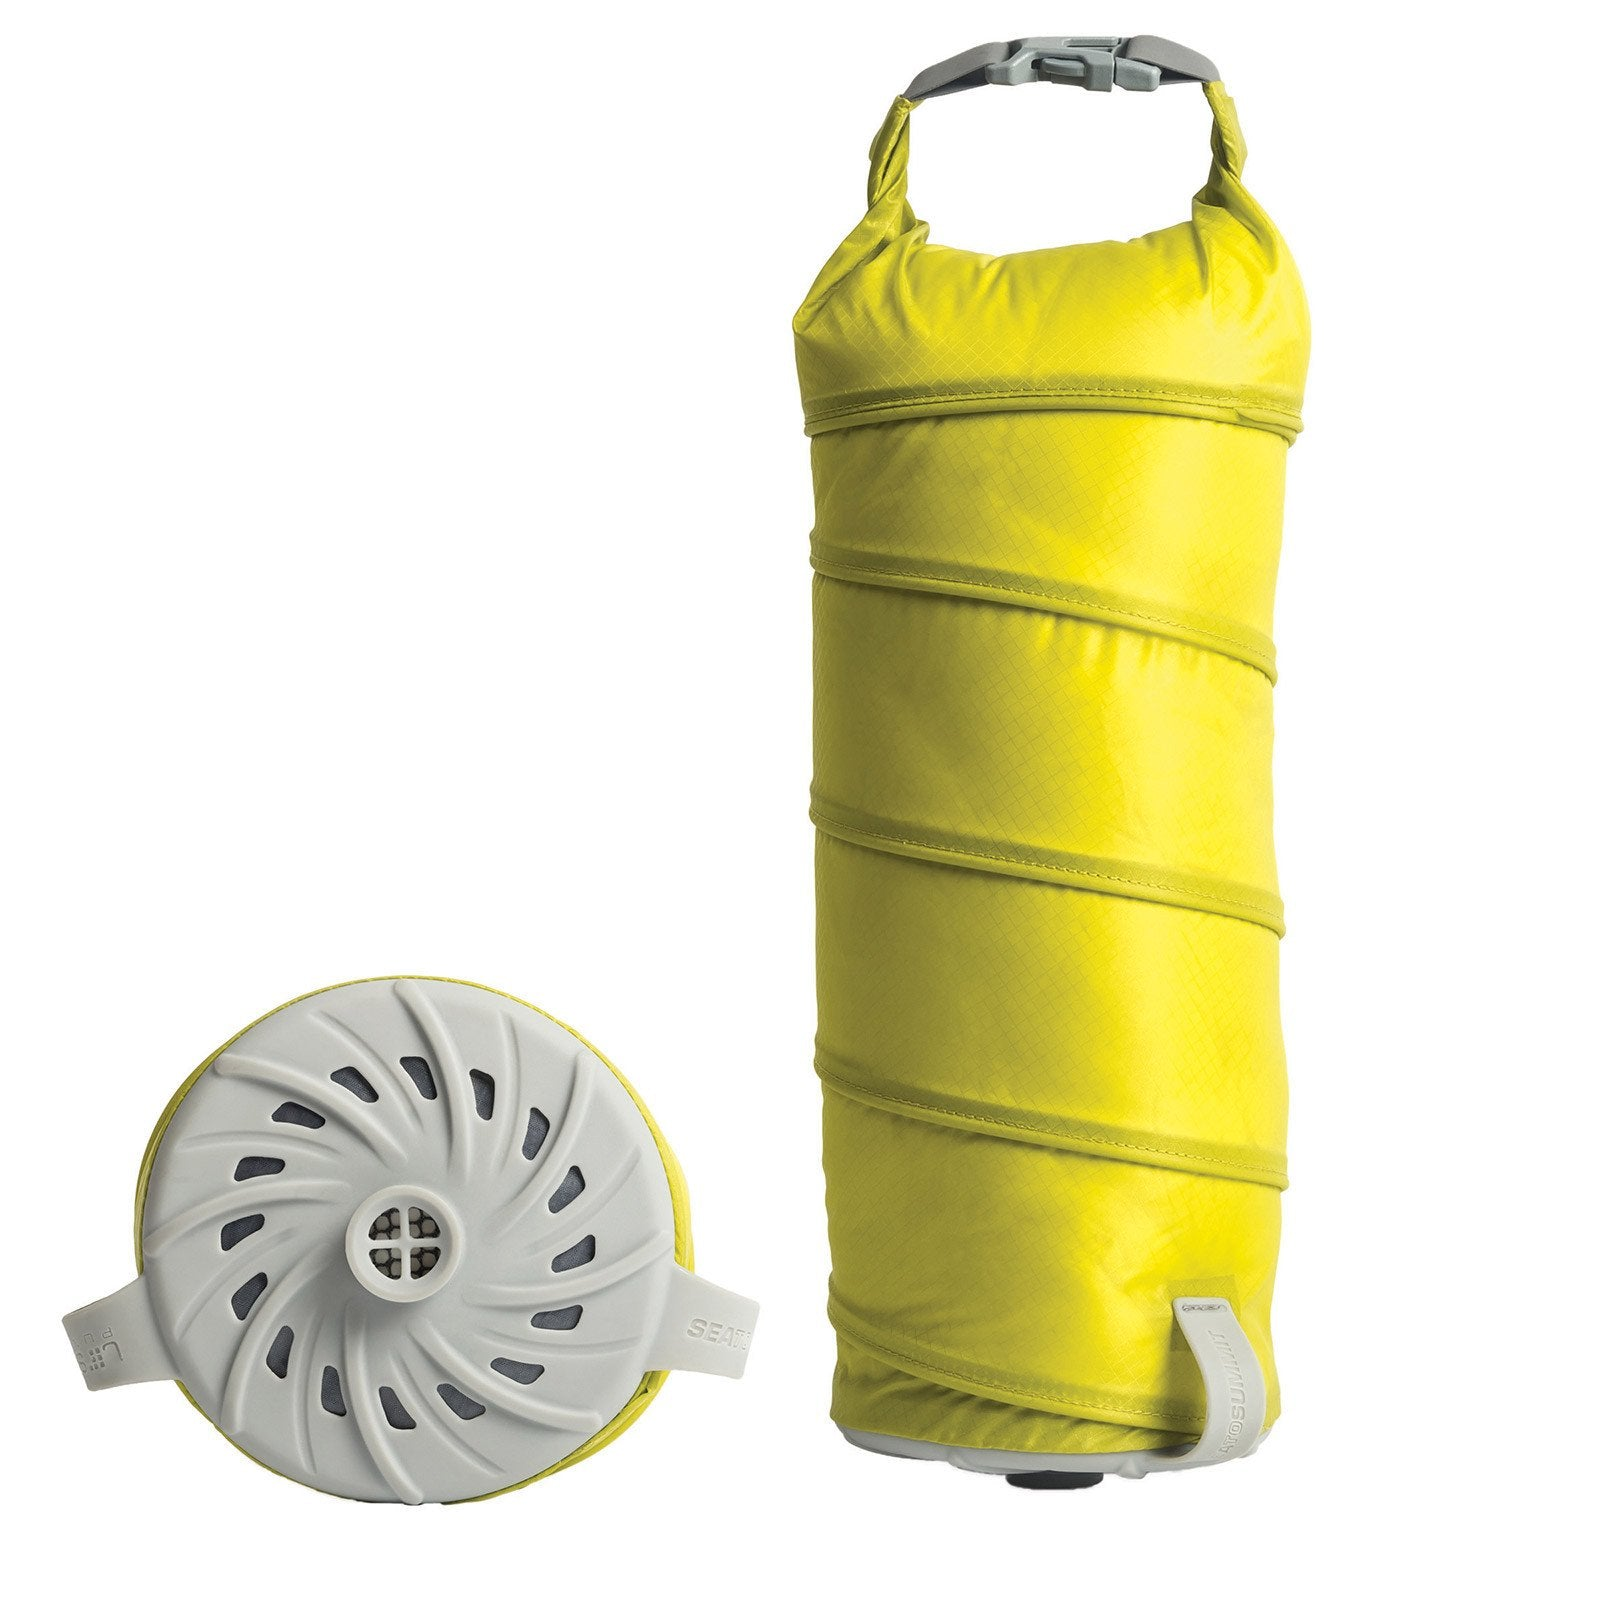 Sea to Summit Jet Stream Pump Sack, showing sack in yellow colour, and pump in grey, side by side